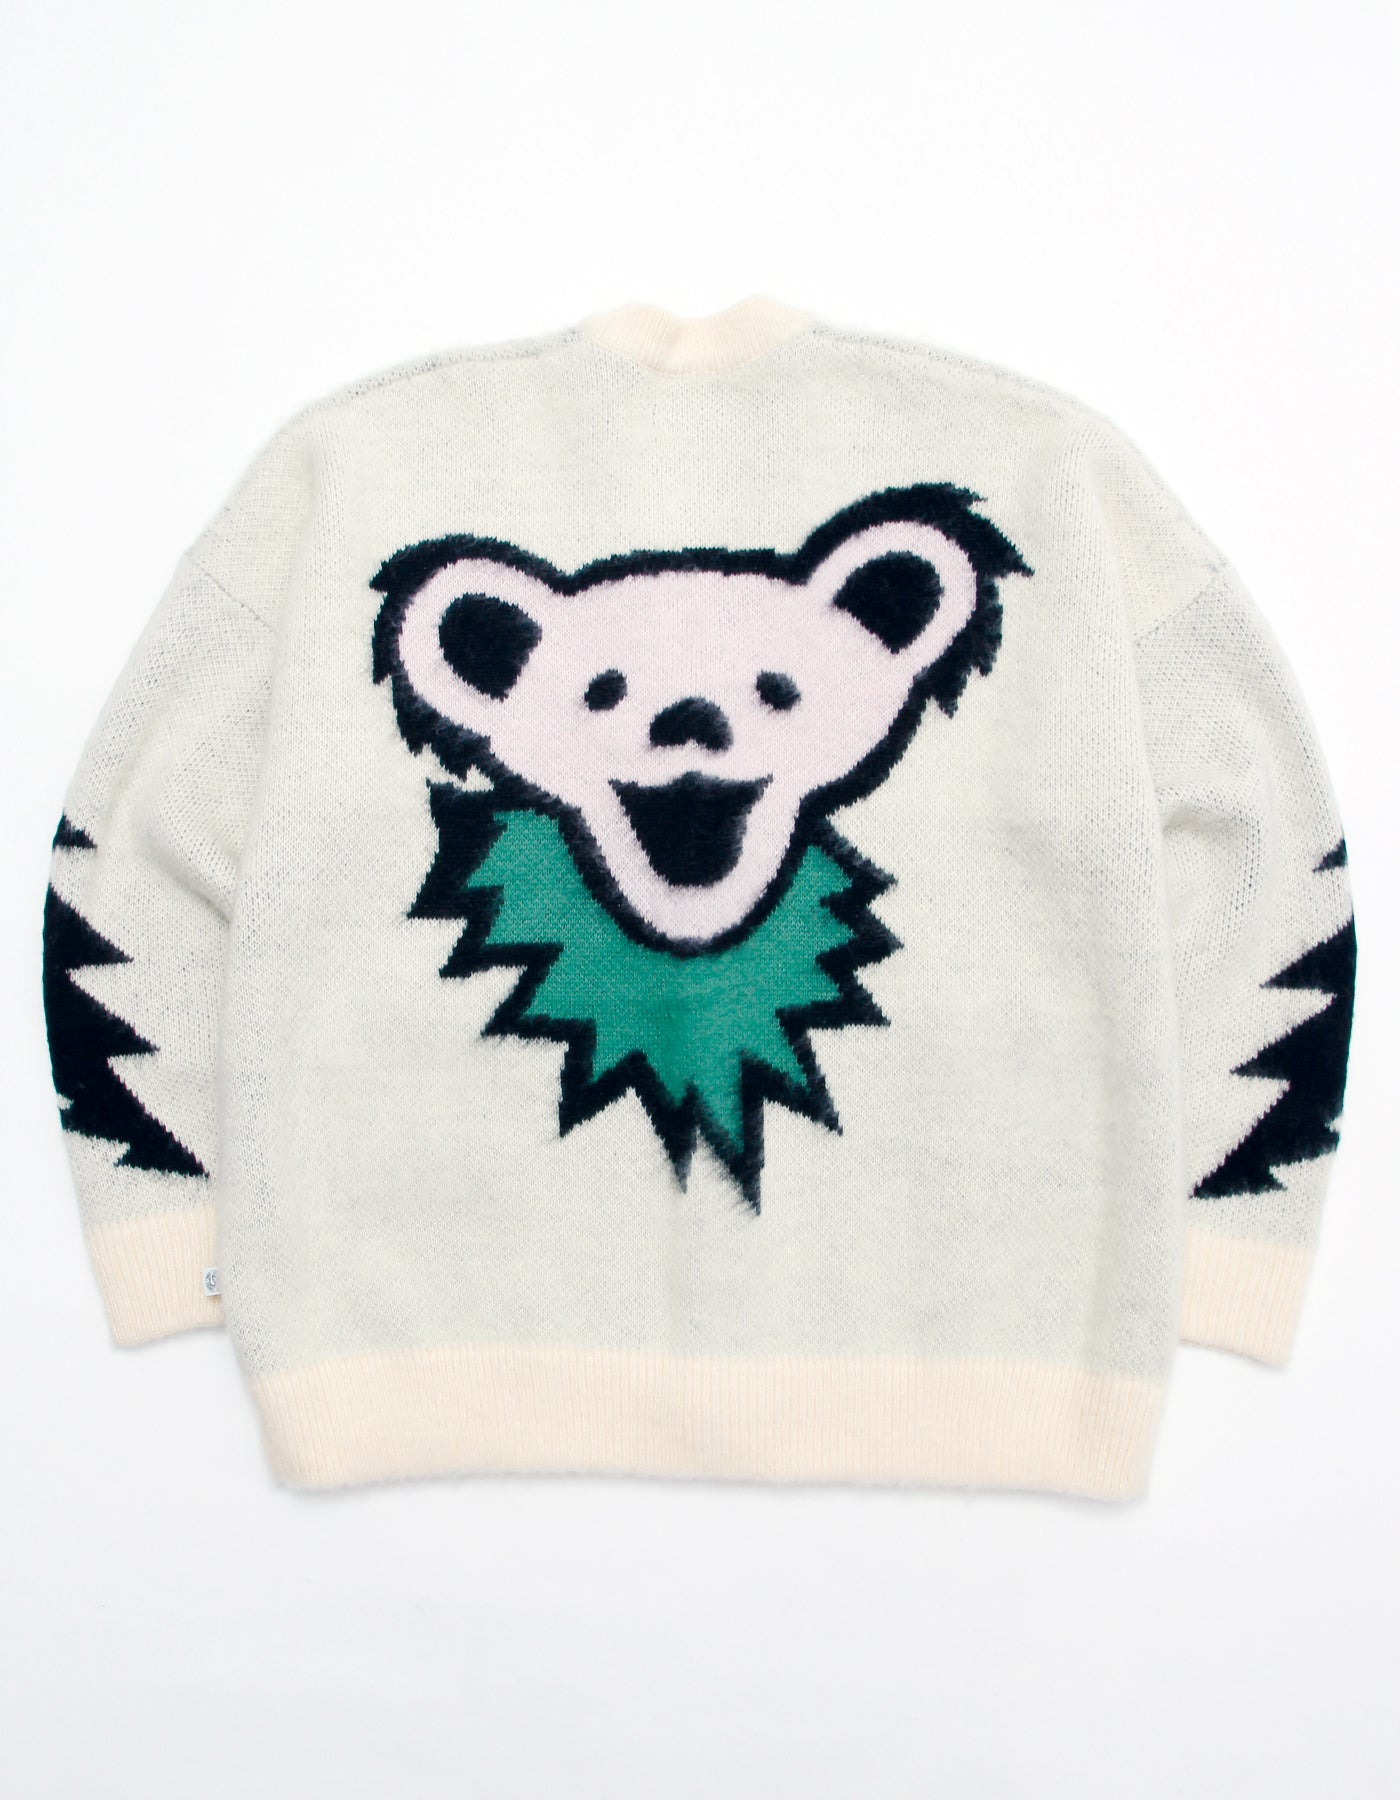 Grateful Dead x little sunny bite Knit cardigan / WHITE